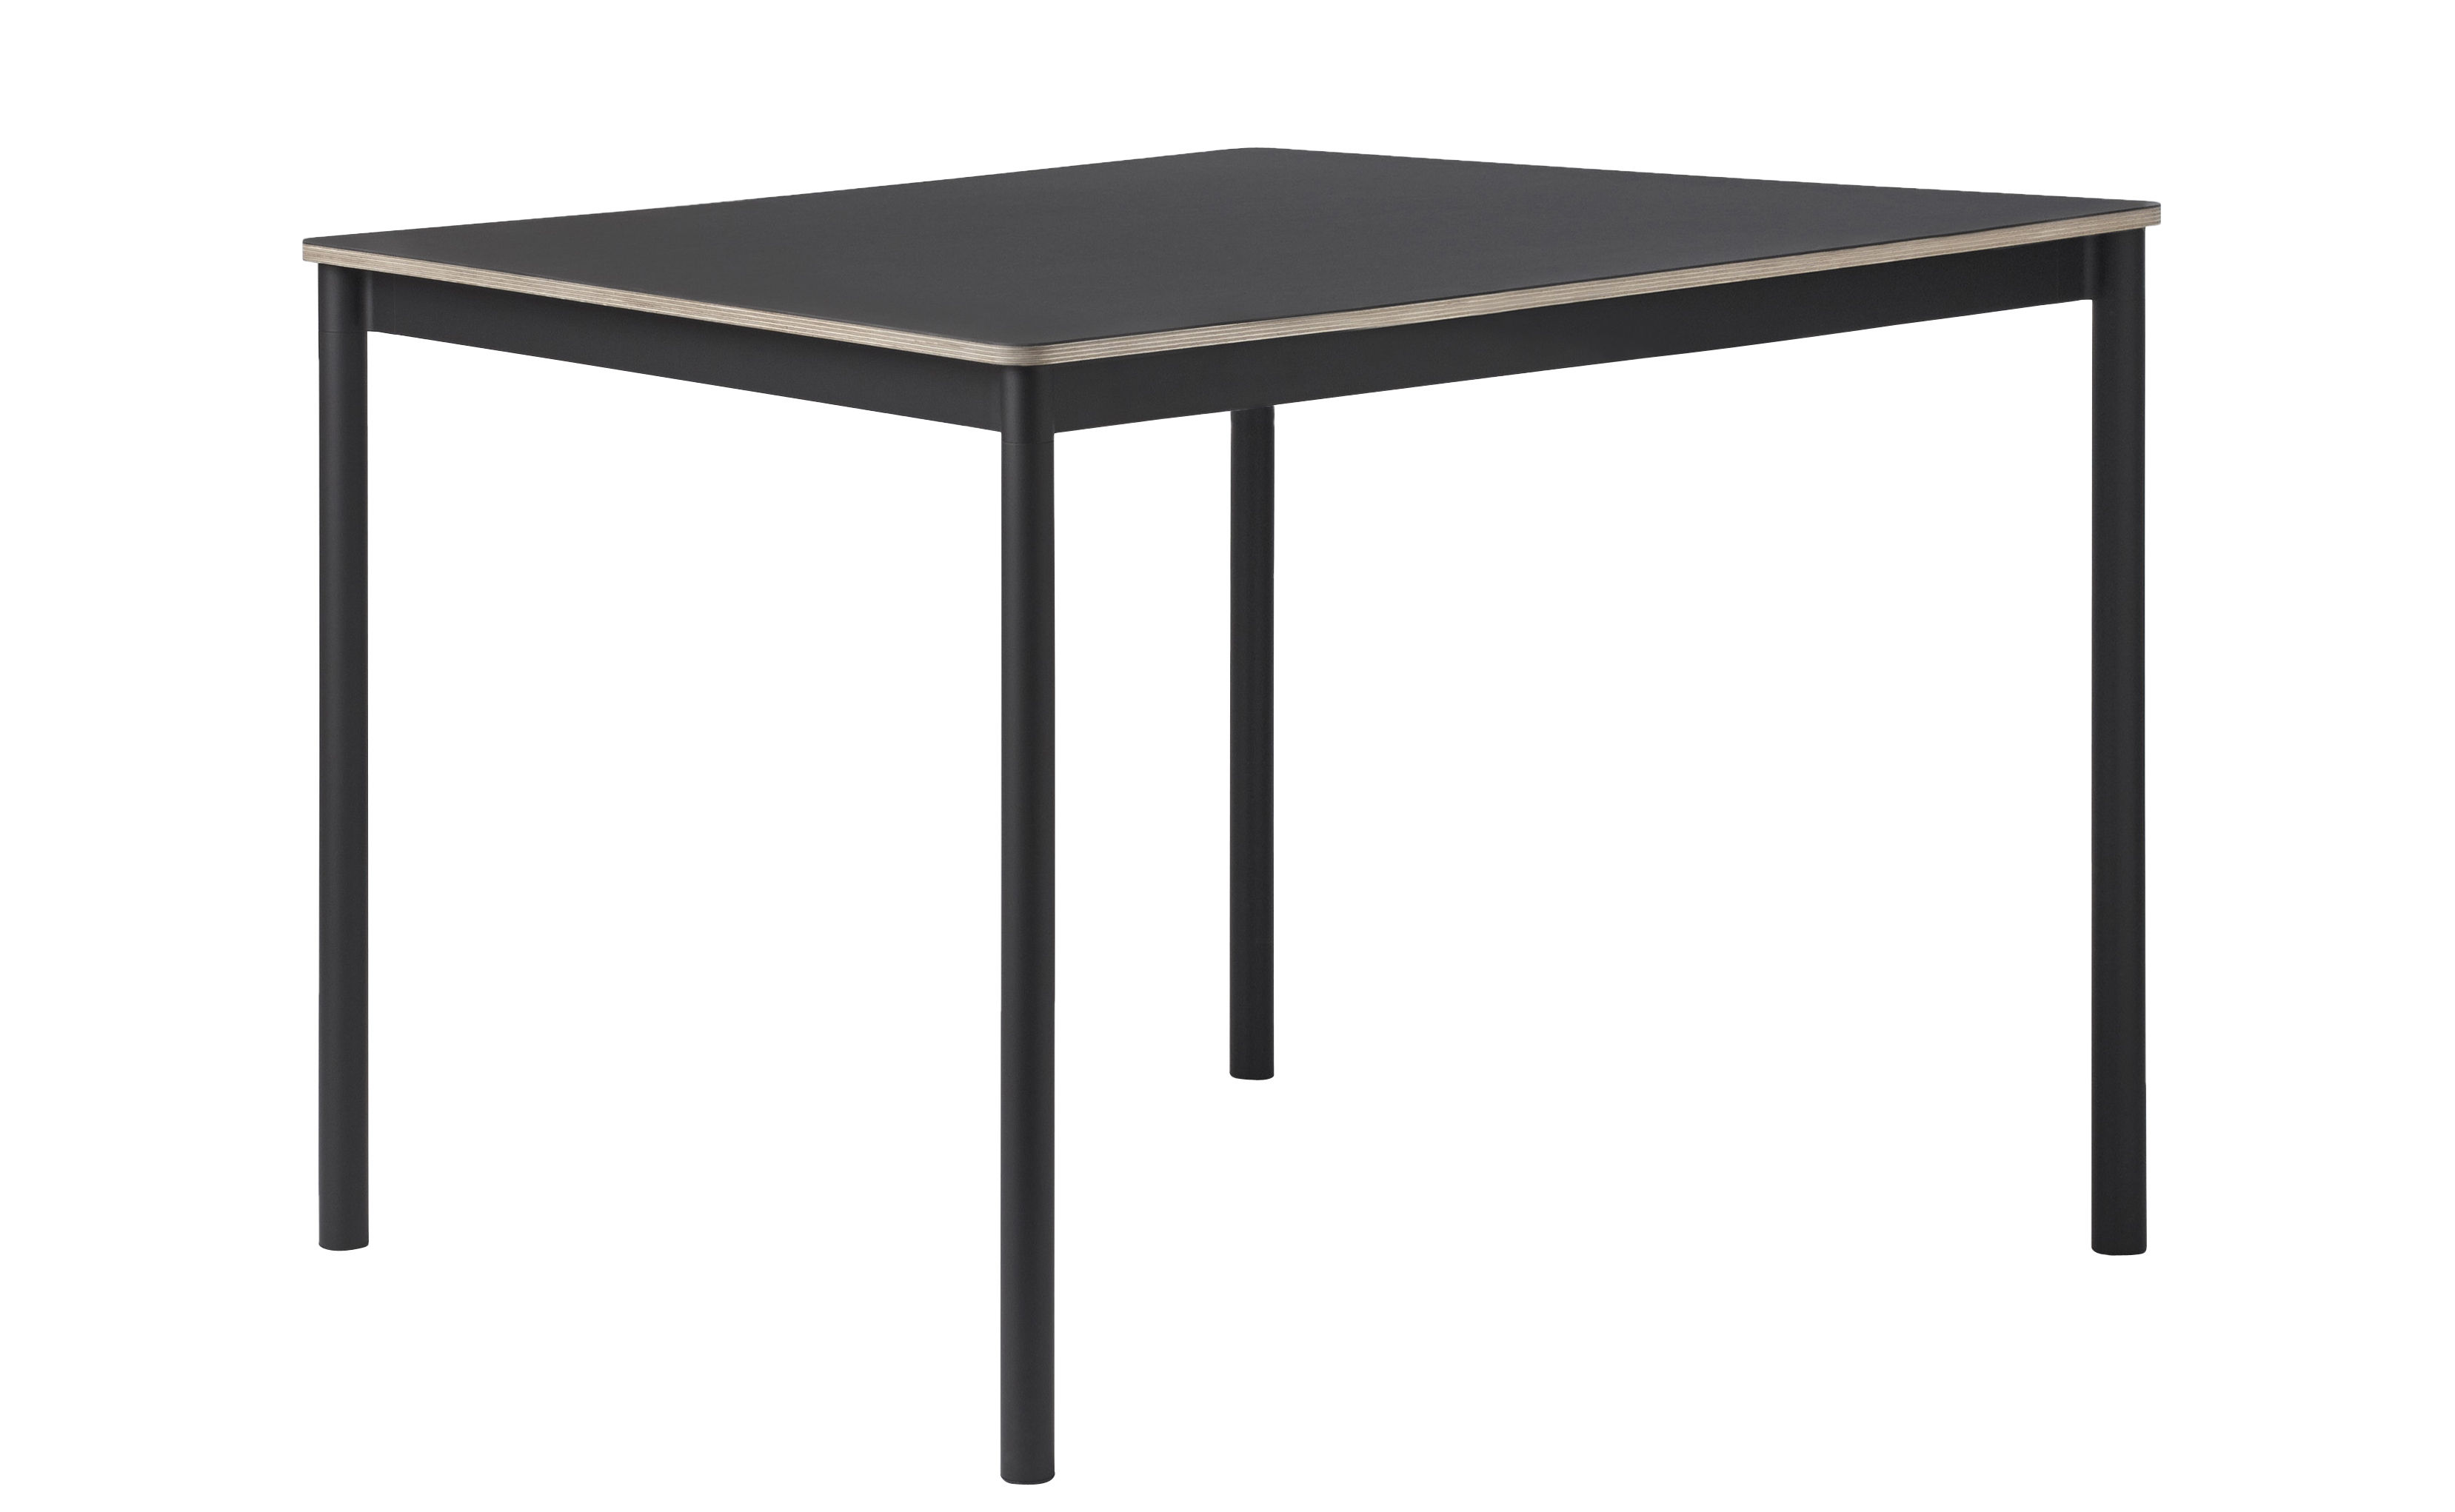 base table 140 x 80 cm black by muuto. Black Bedroom Furniture Sets. Home Design Ideas